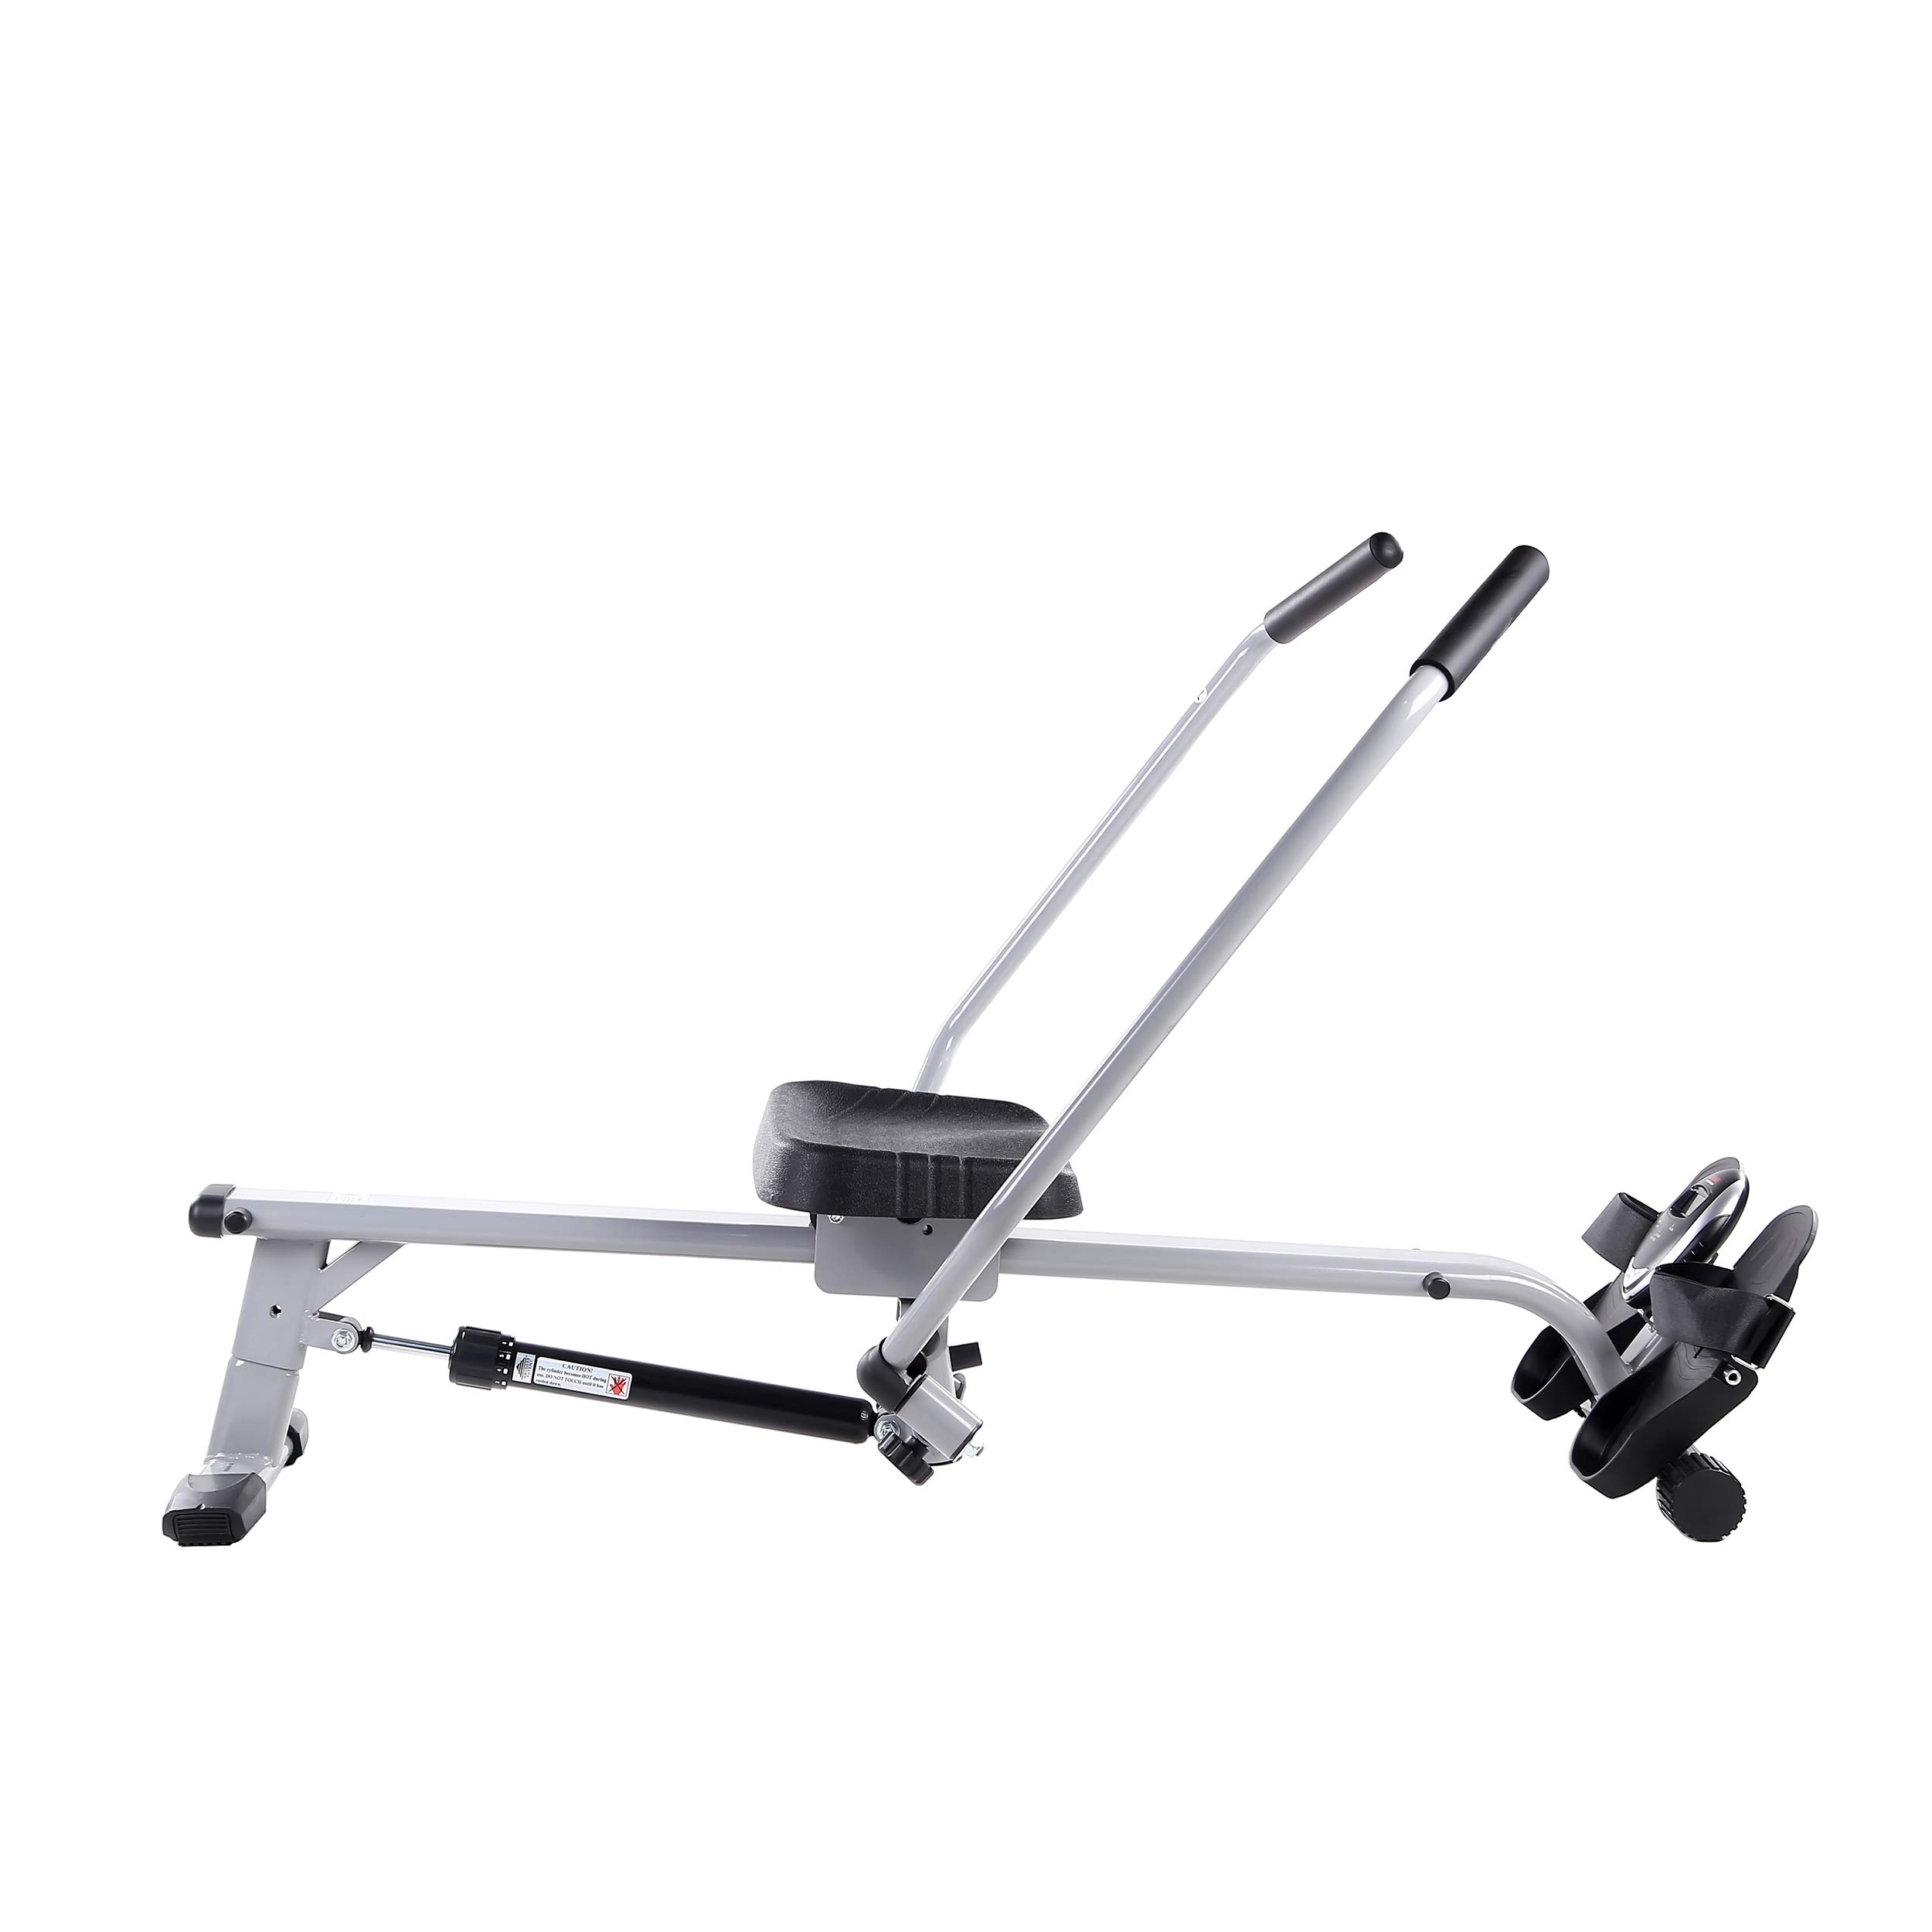 Sunny Health & Fitness SF-RW5639 Full Motion Rowing Machine Rower w/ 350 lb Weight Capacity and LCD Monitor by Sunny Health & Fitness (Image #4)